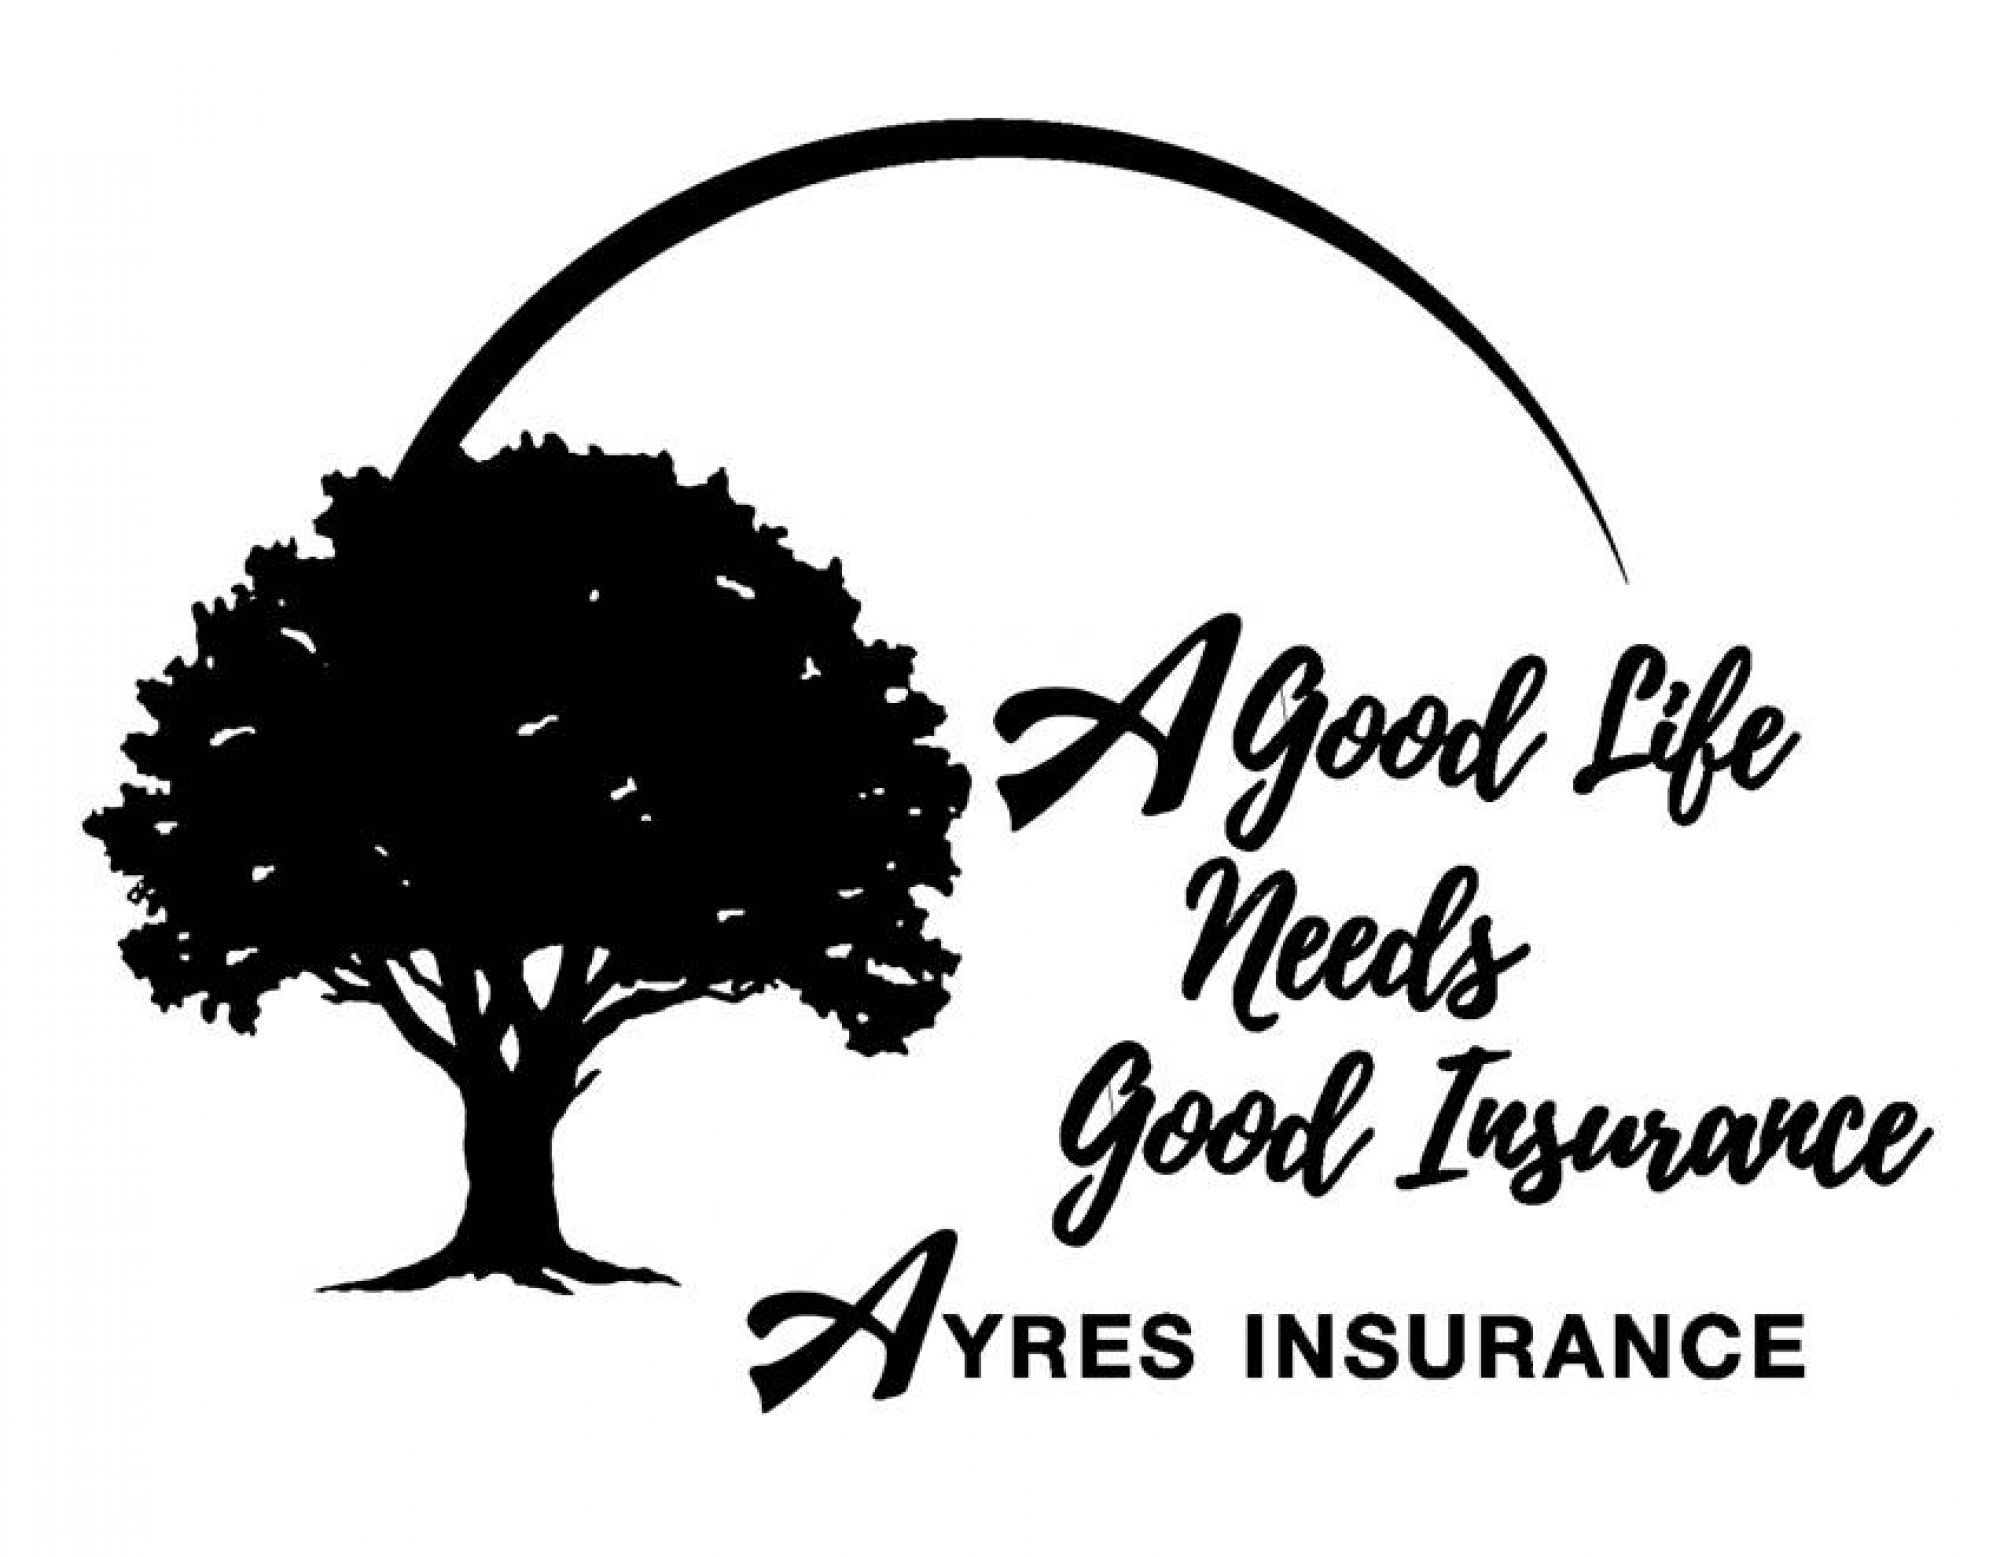 Ayres Insurance Agency